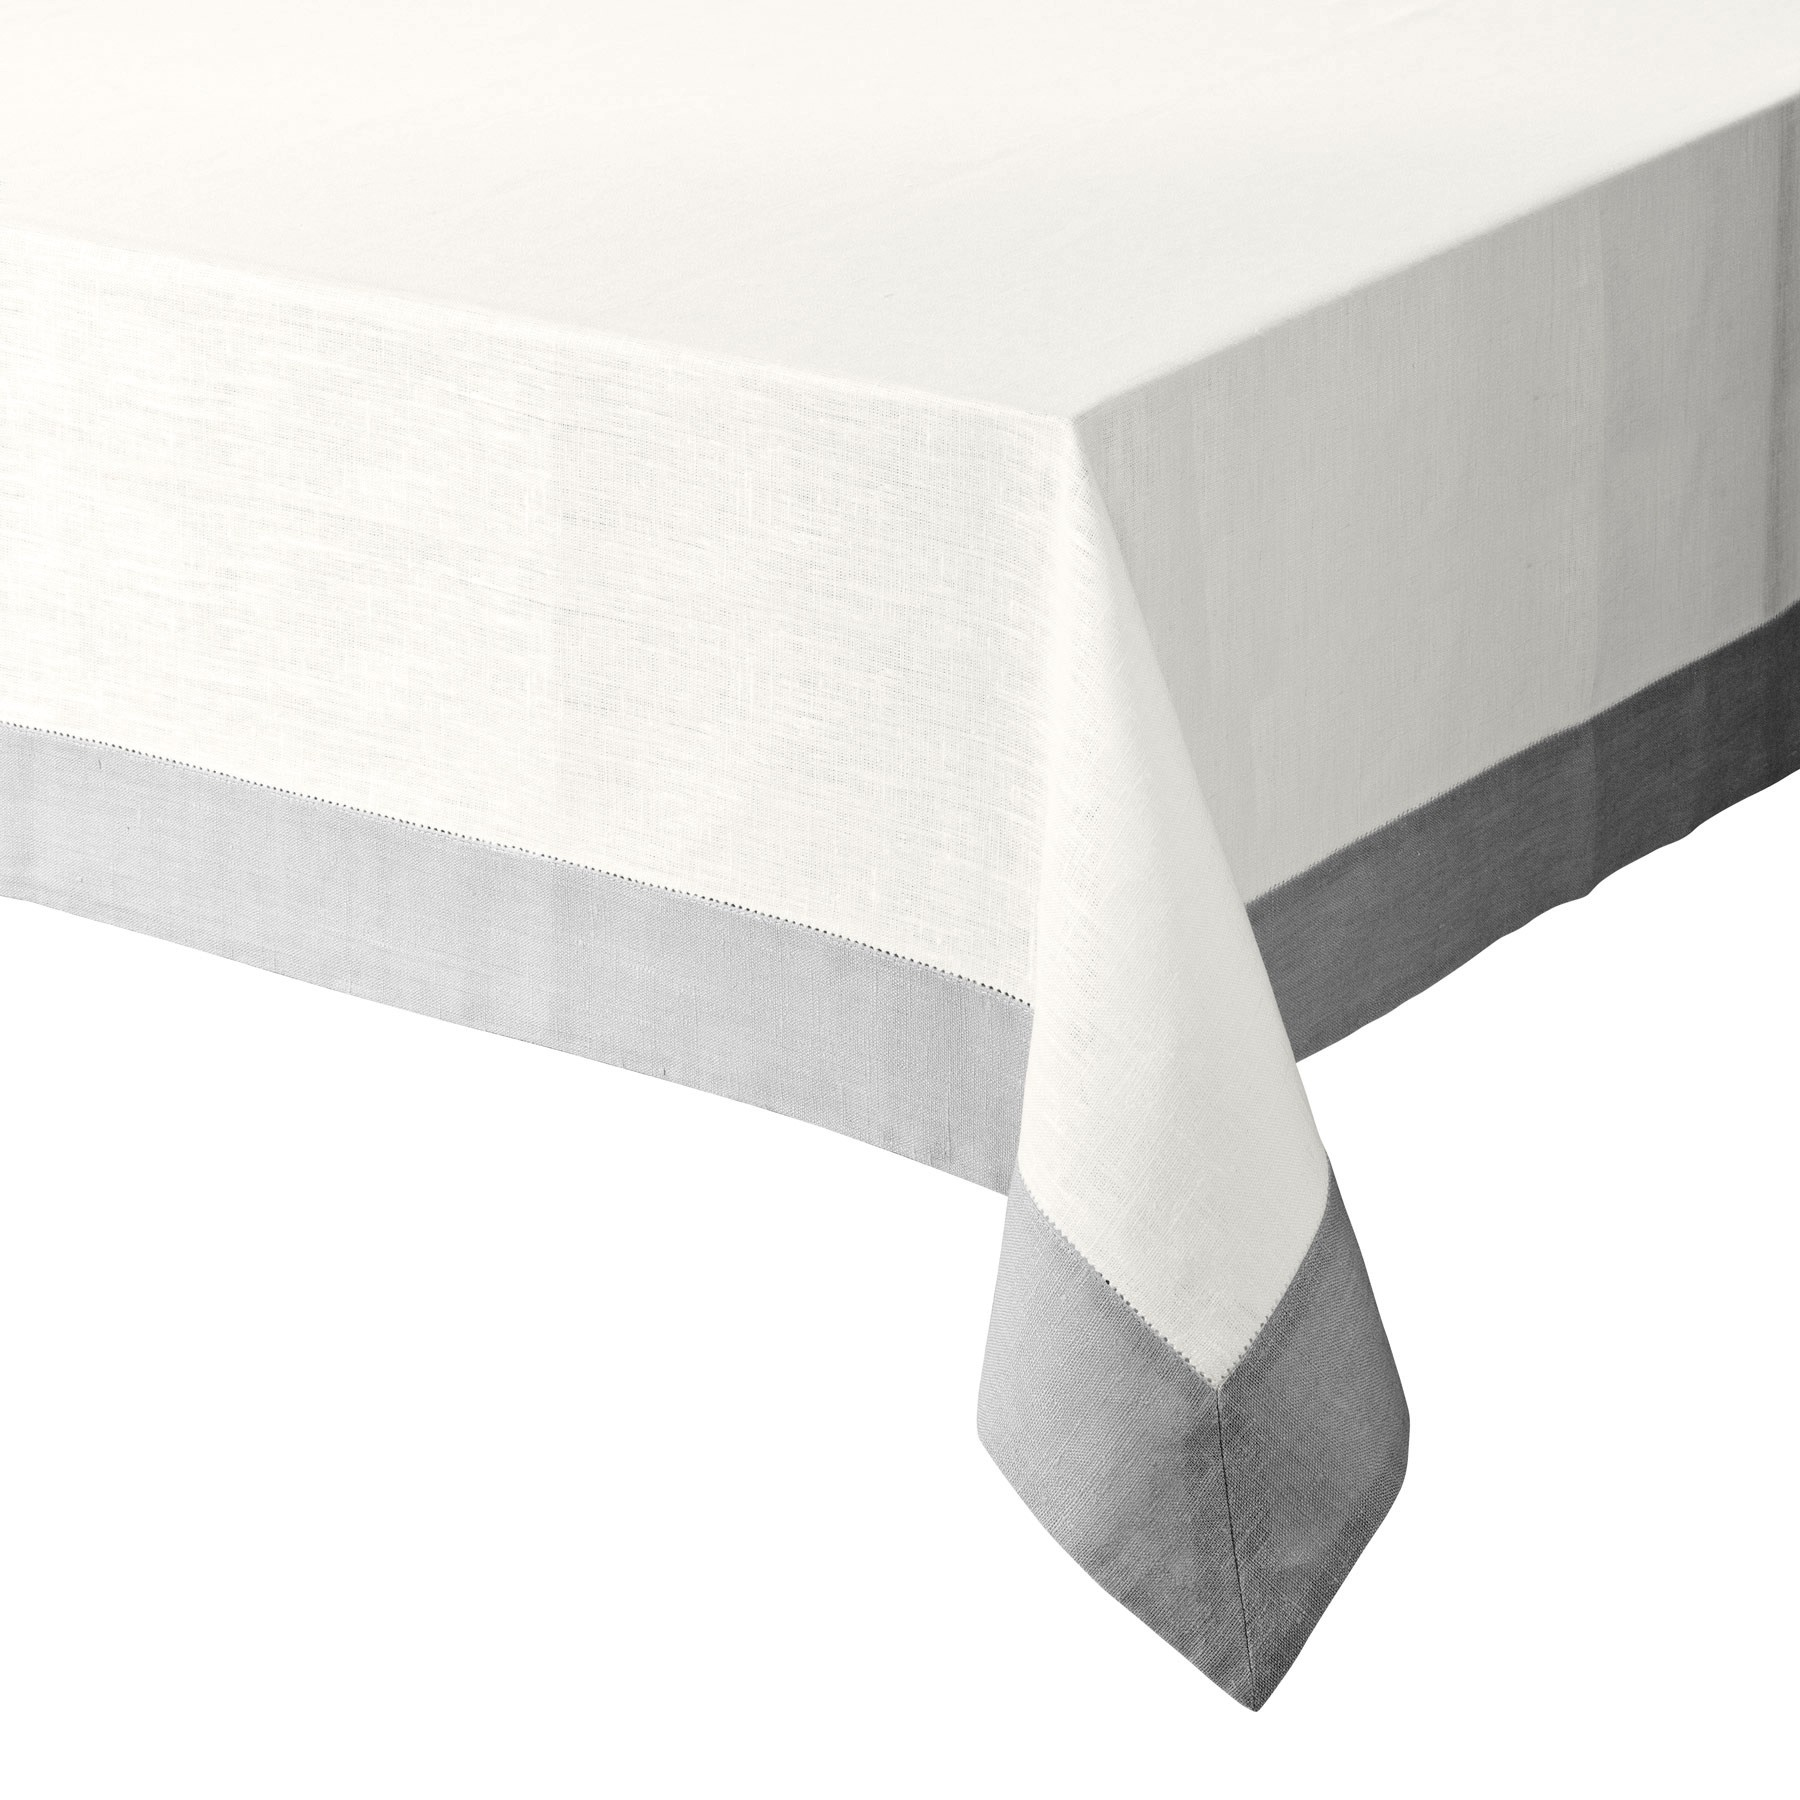 TABLECLOTH WITH BORDER<br />natural white and light gray